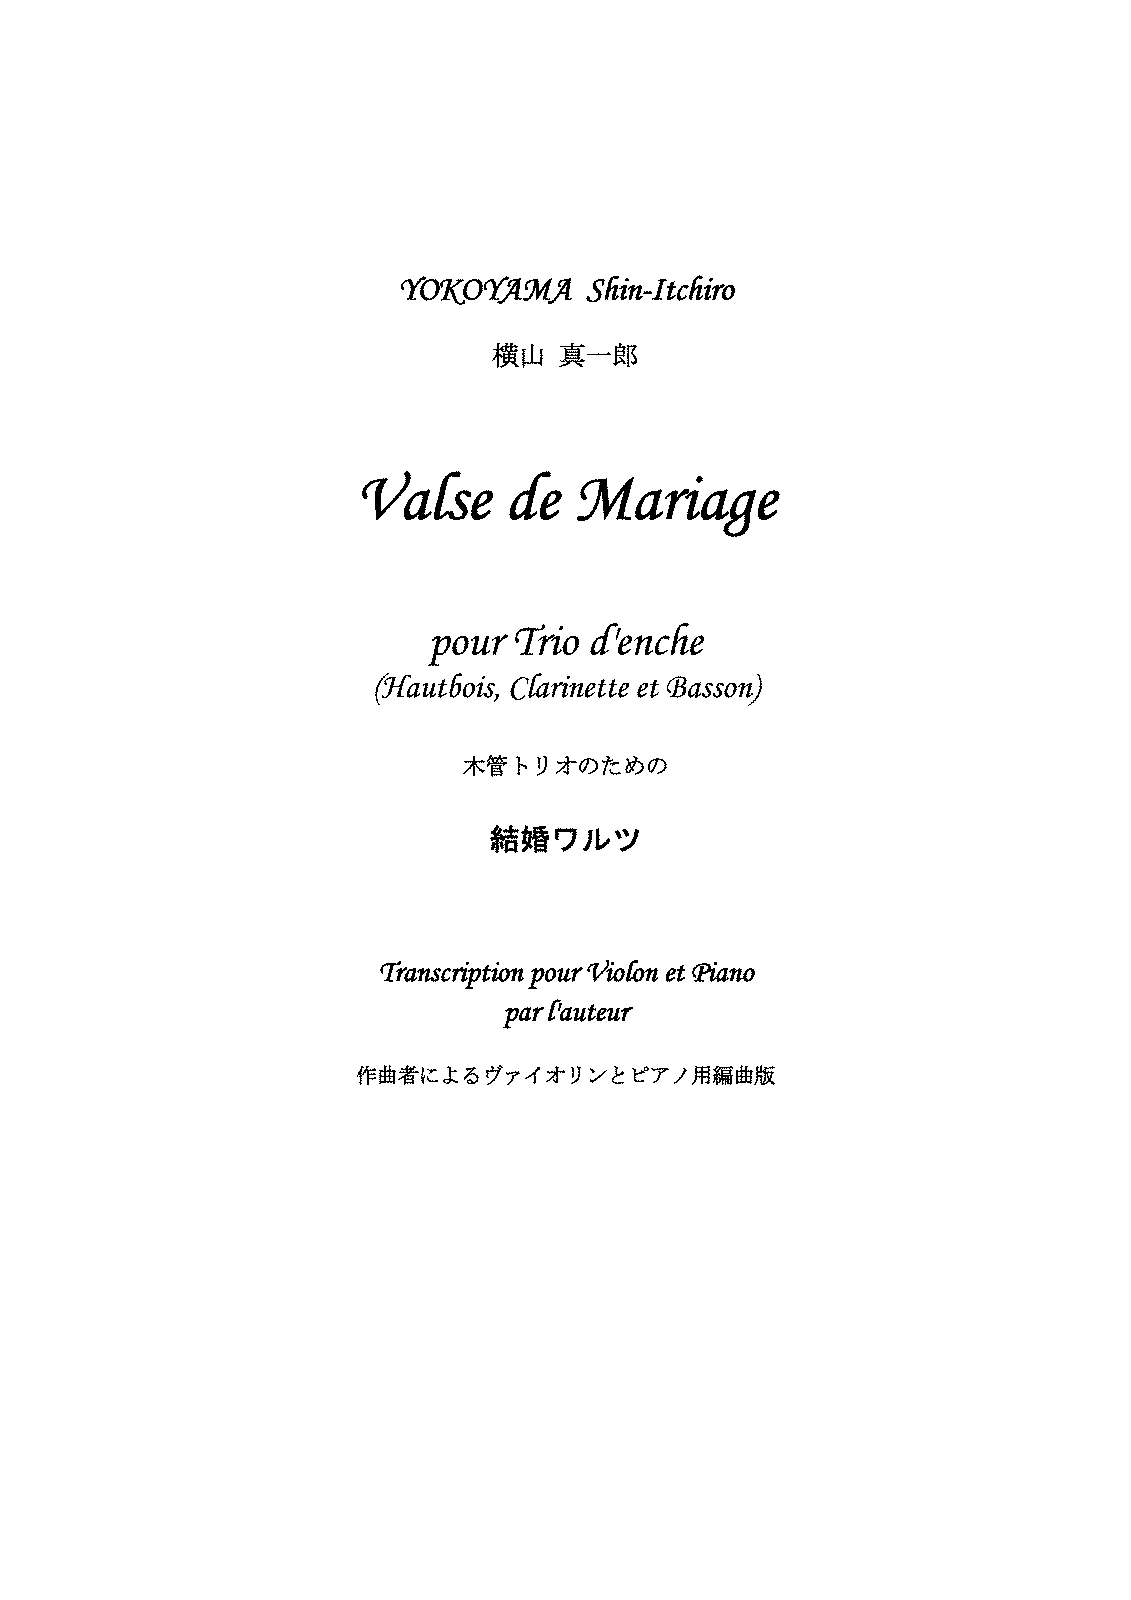 PMLP114340-Valse de Mariage Violin and Piano.pdf